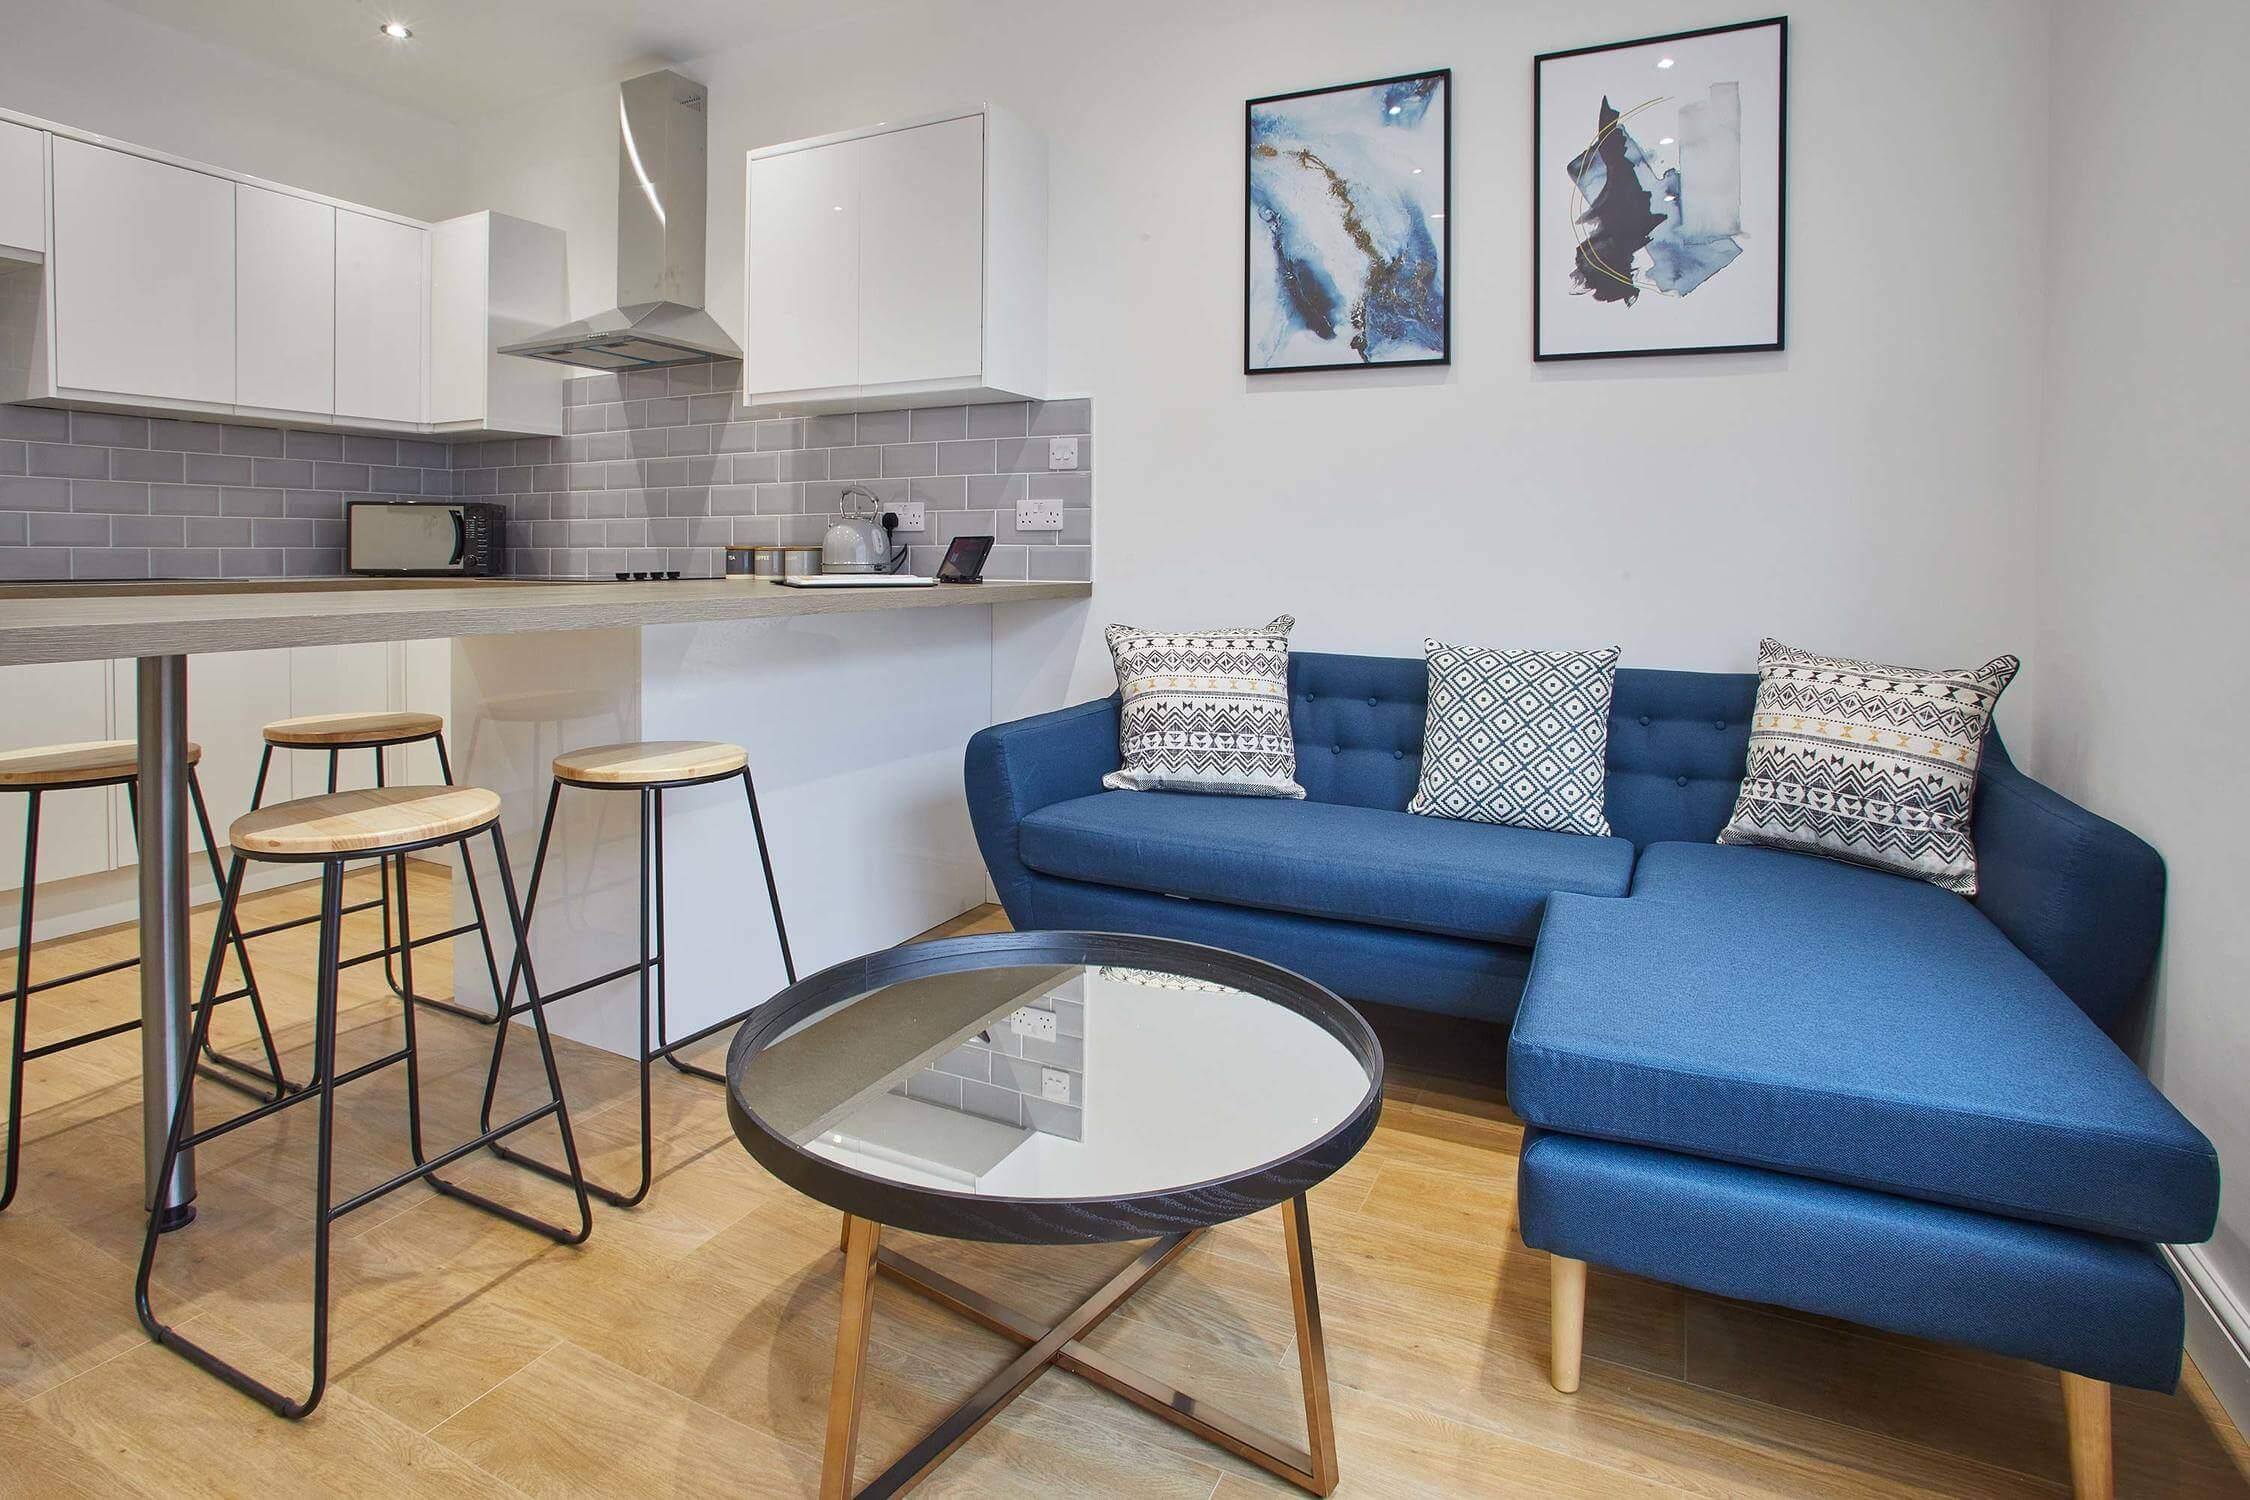 Property Image 1 - Modern Stylish Two Bedroom Apartment in the Centre of Whitby